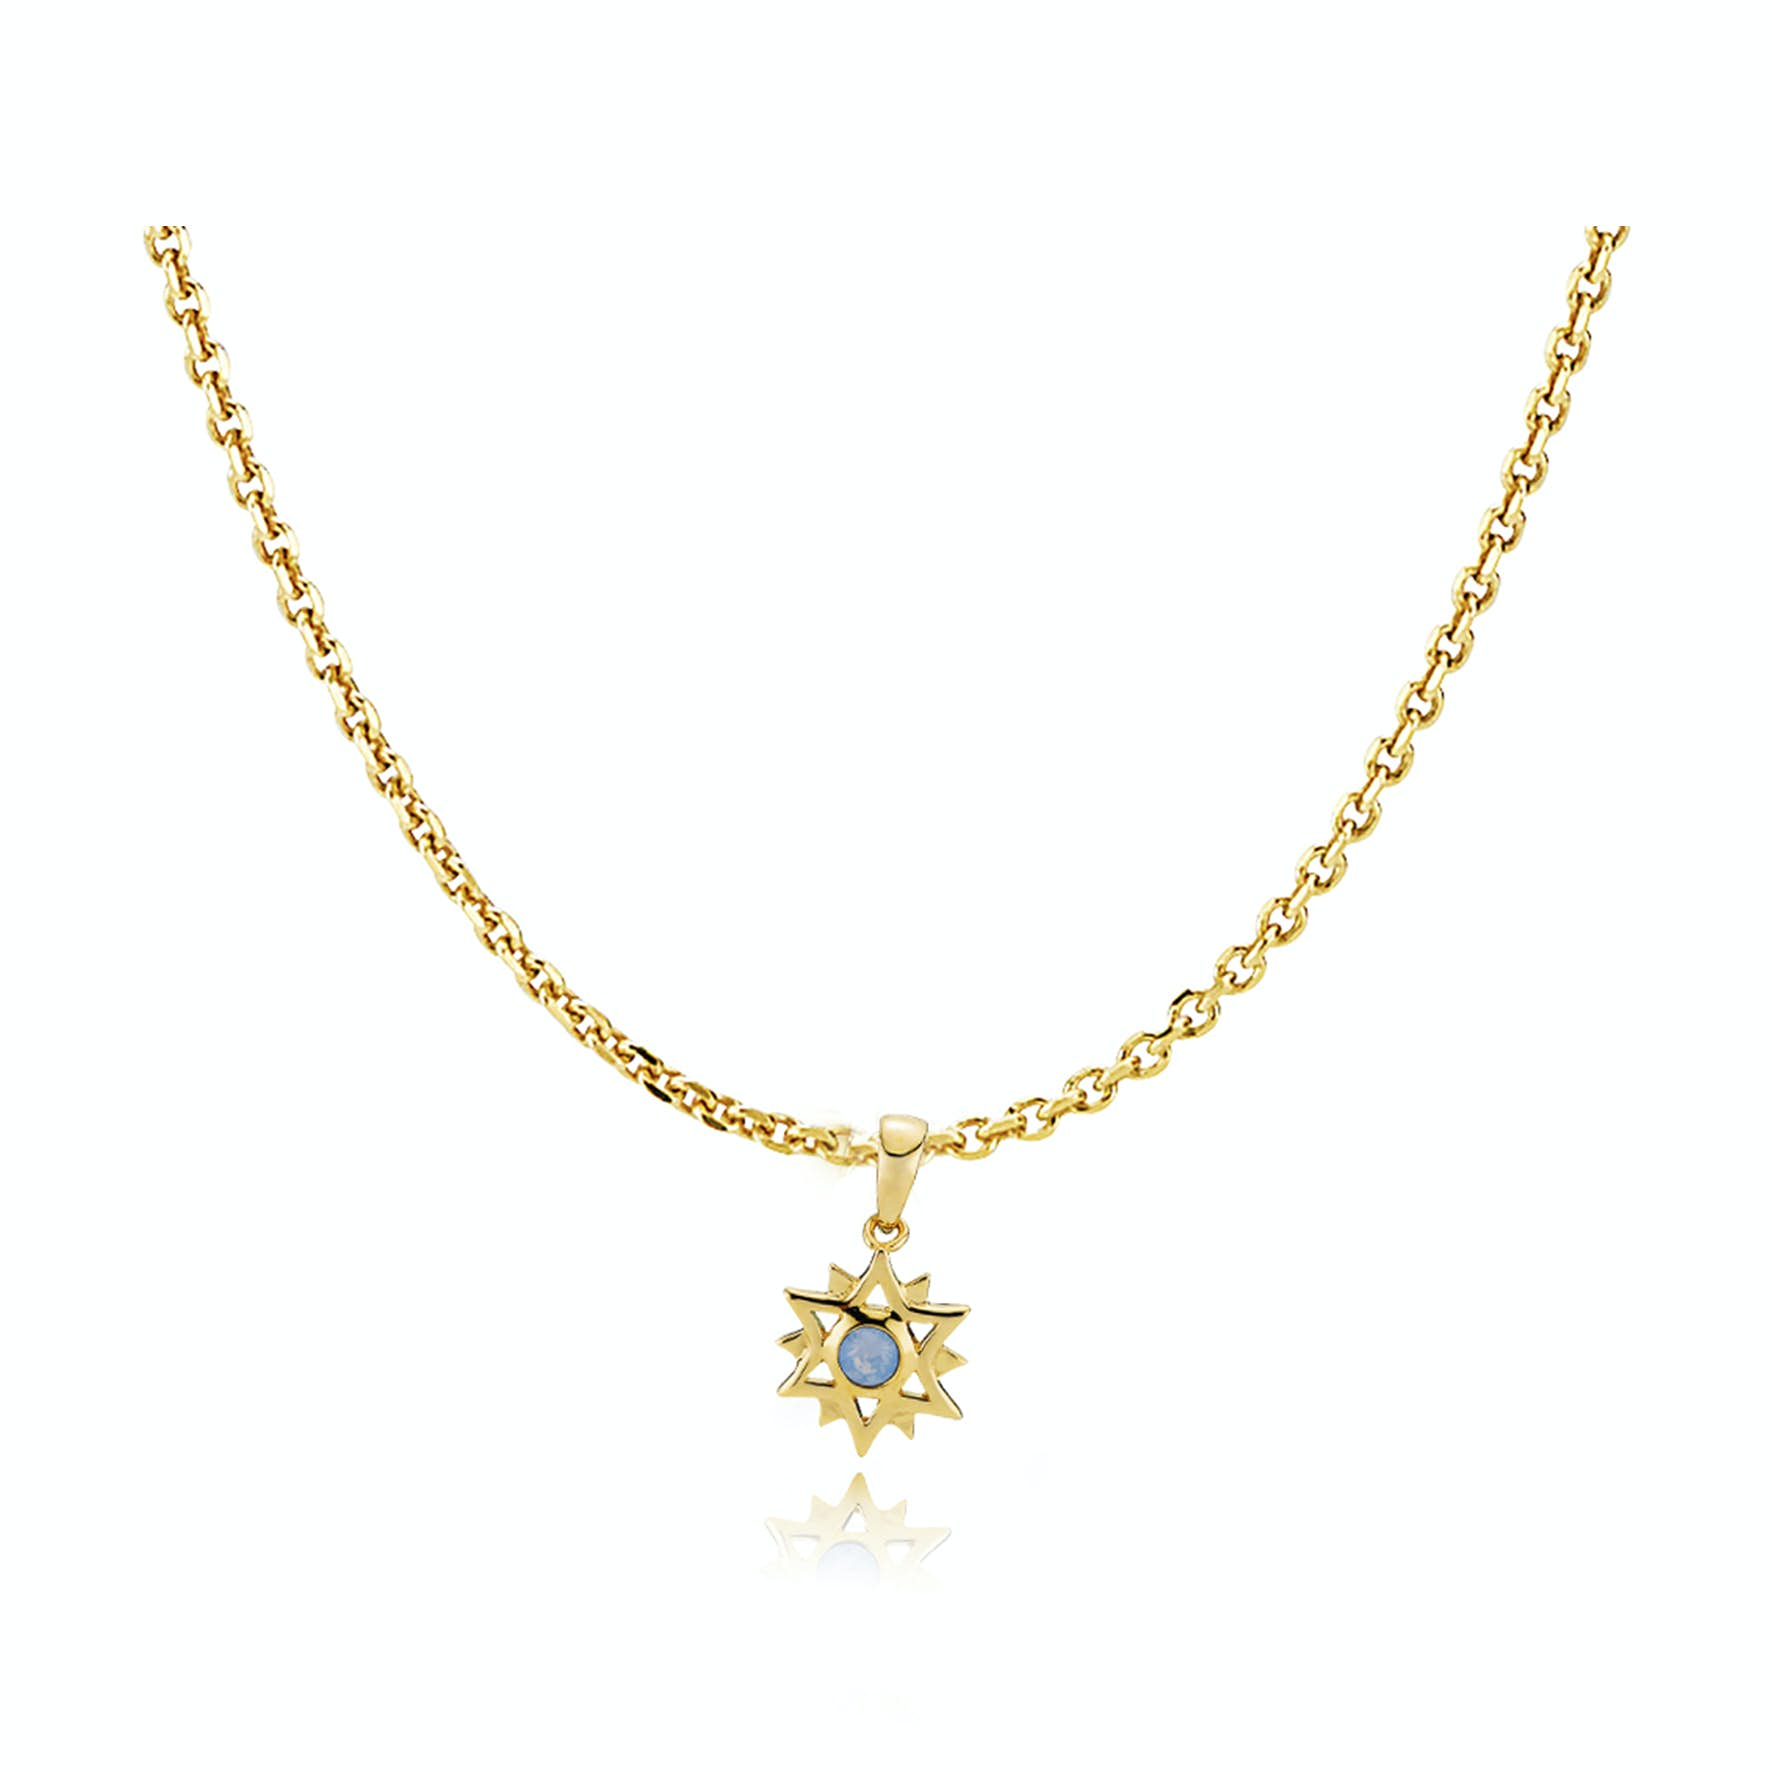 Olivia by Sistie Pendant Necklace from Sistie in Goldplated-Silver Sterling 925